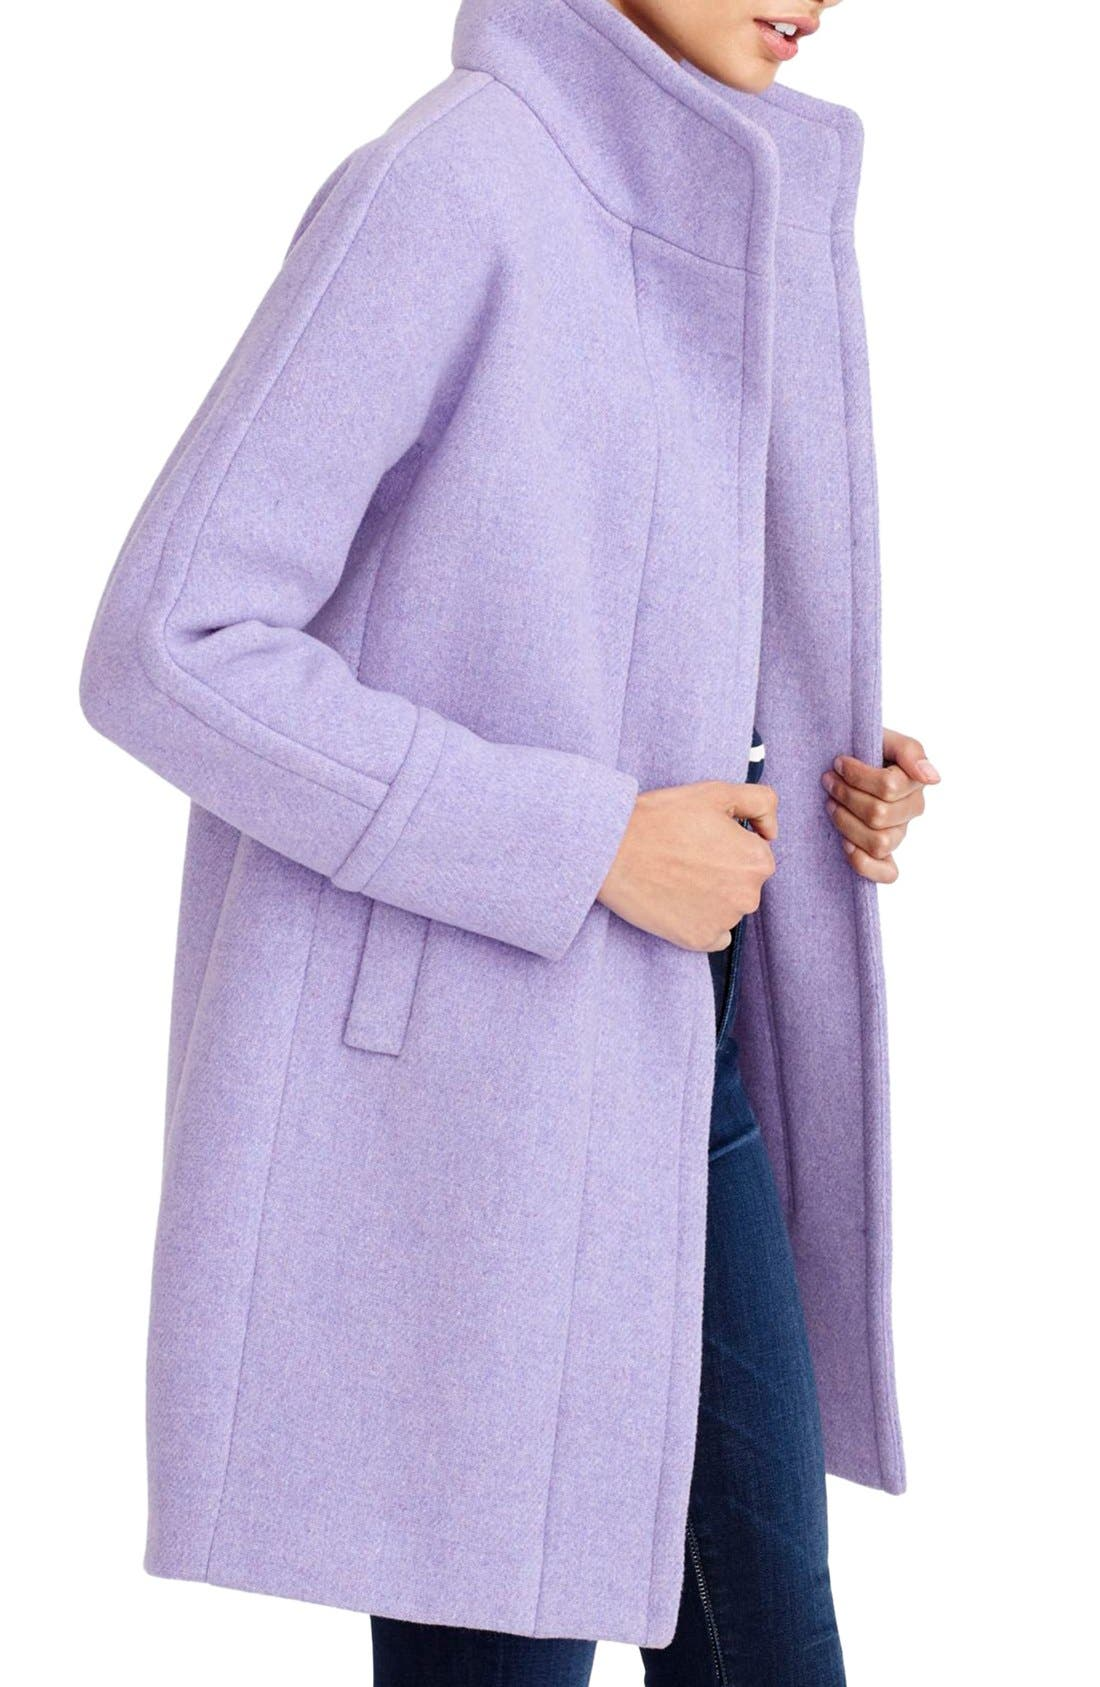 Stadium Cloth Cocoon Coat,                             Alternate thumbnail 2, color,                             Heather French Violet